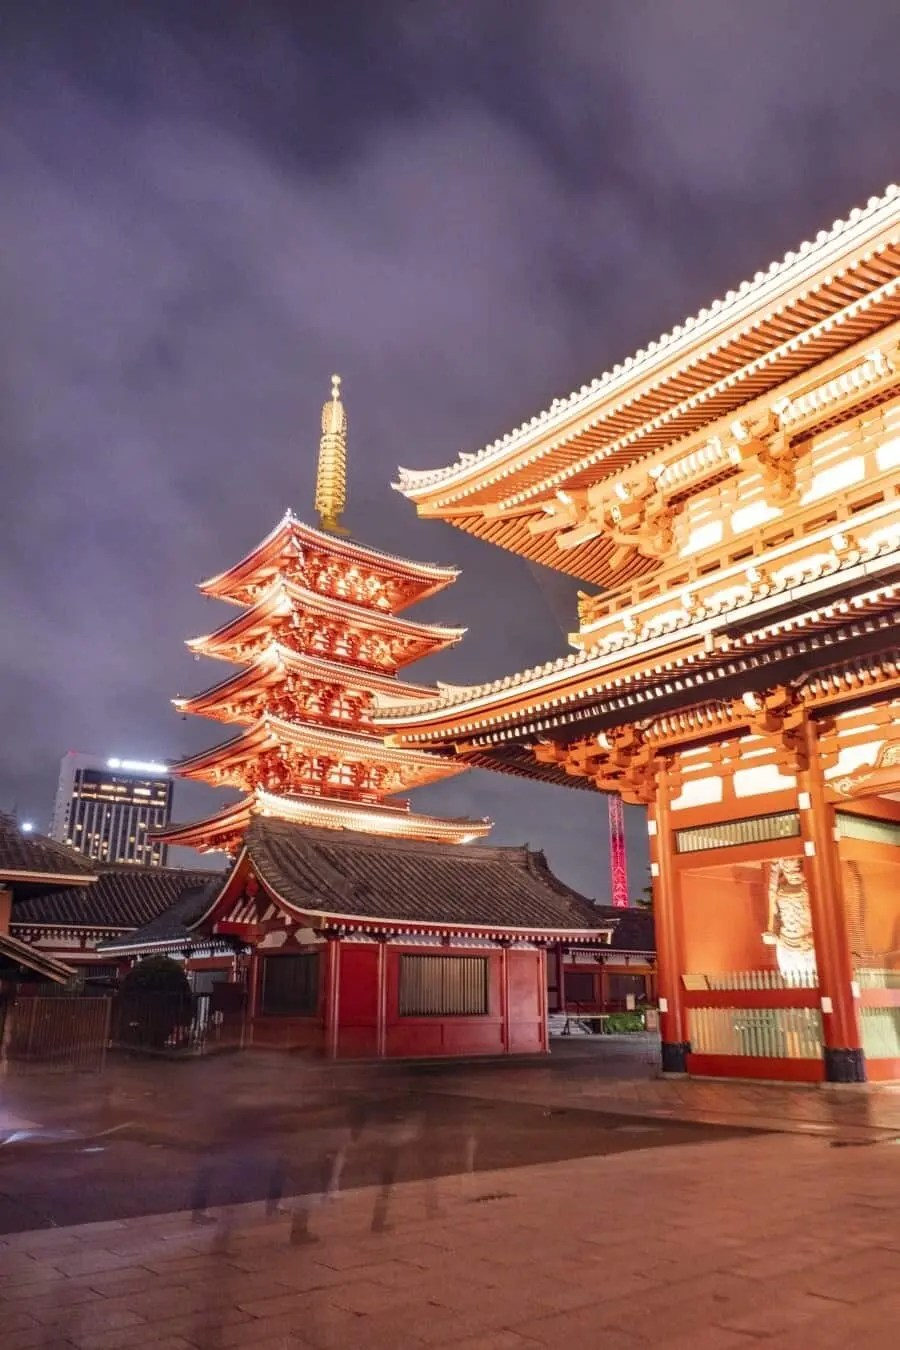 Asakusa and Senso-ji Shrine, Tokyo Photography Locations - A Photographer's Guide to Photo Spots in Tokyo